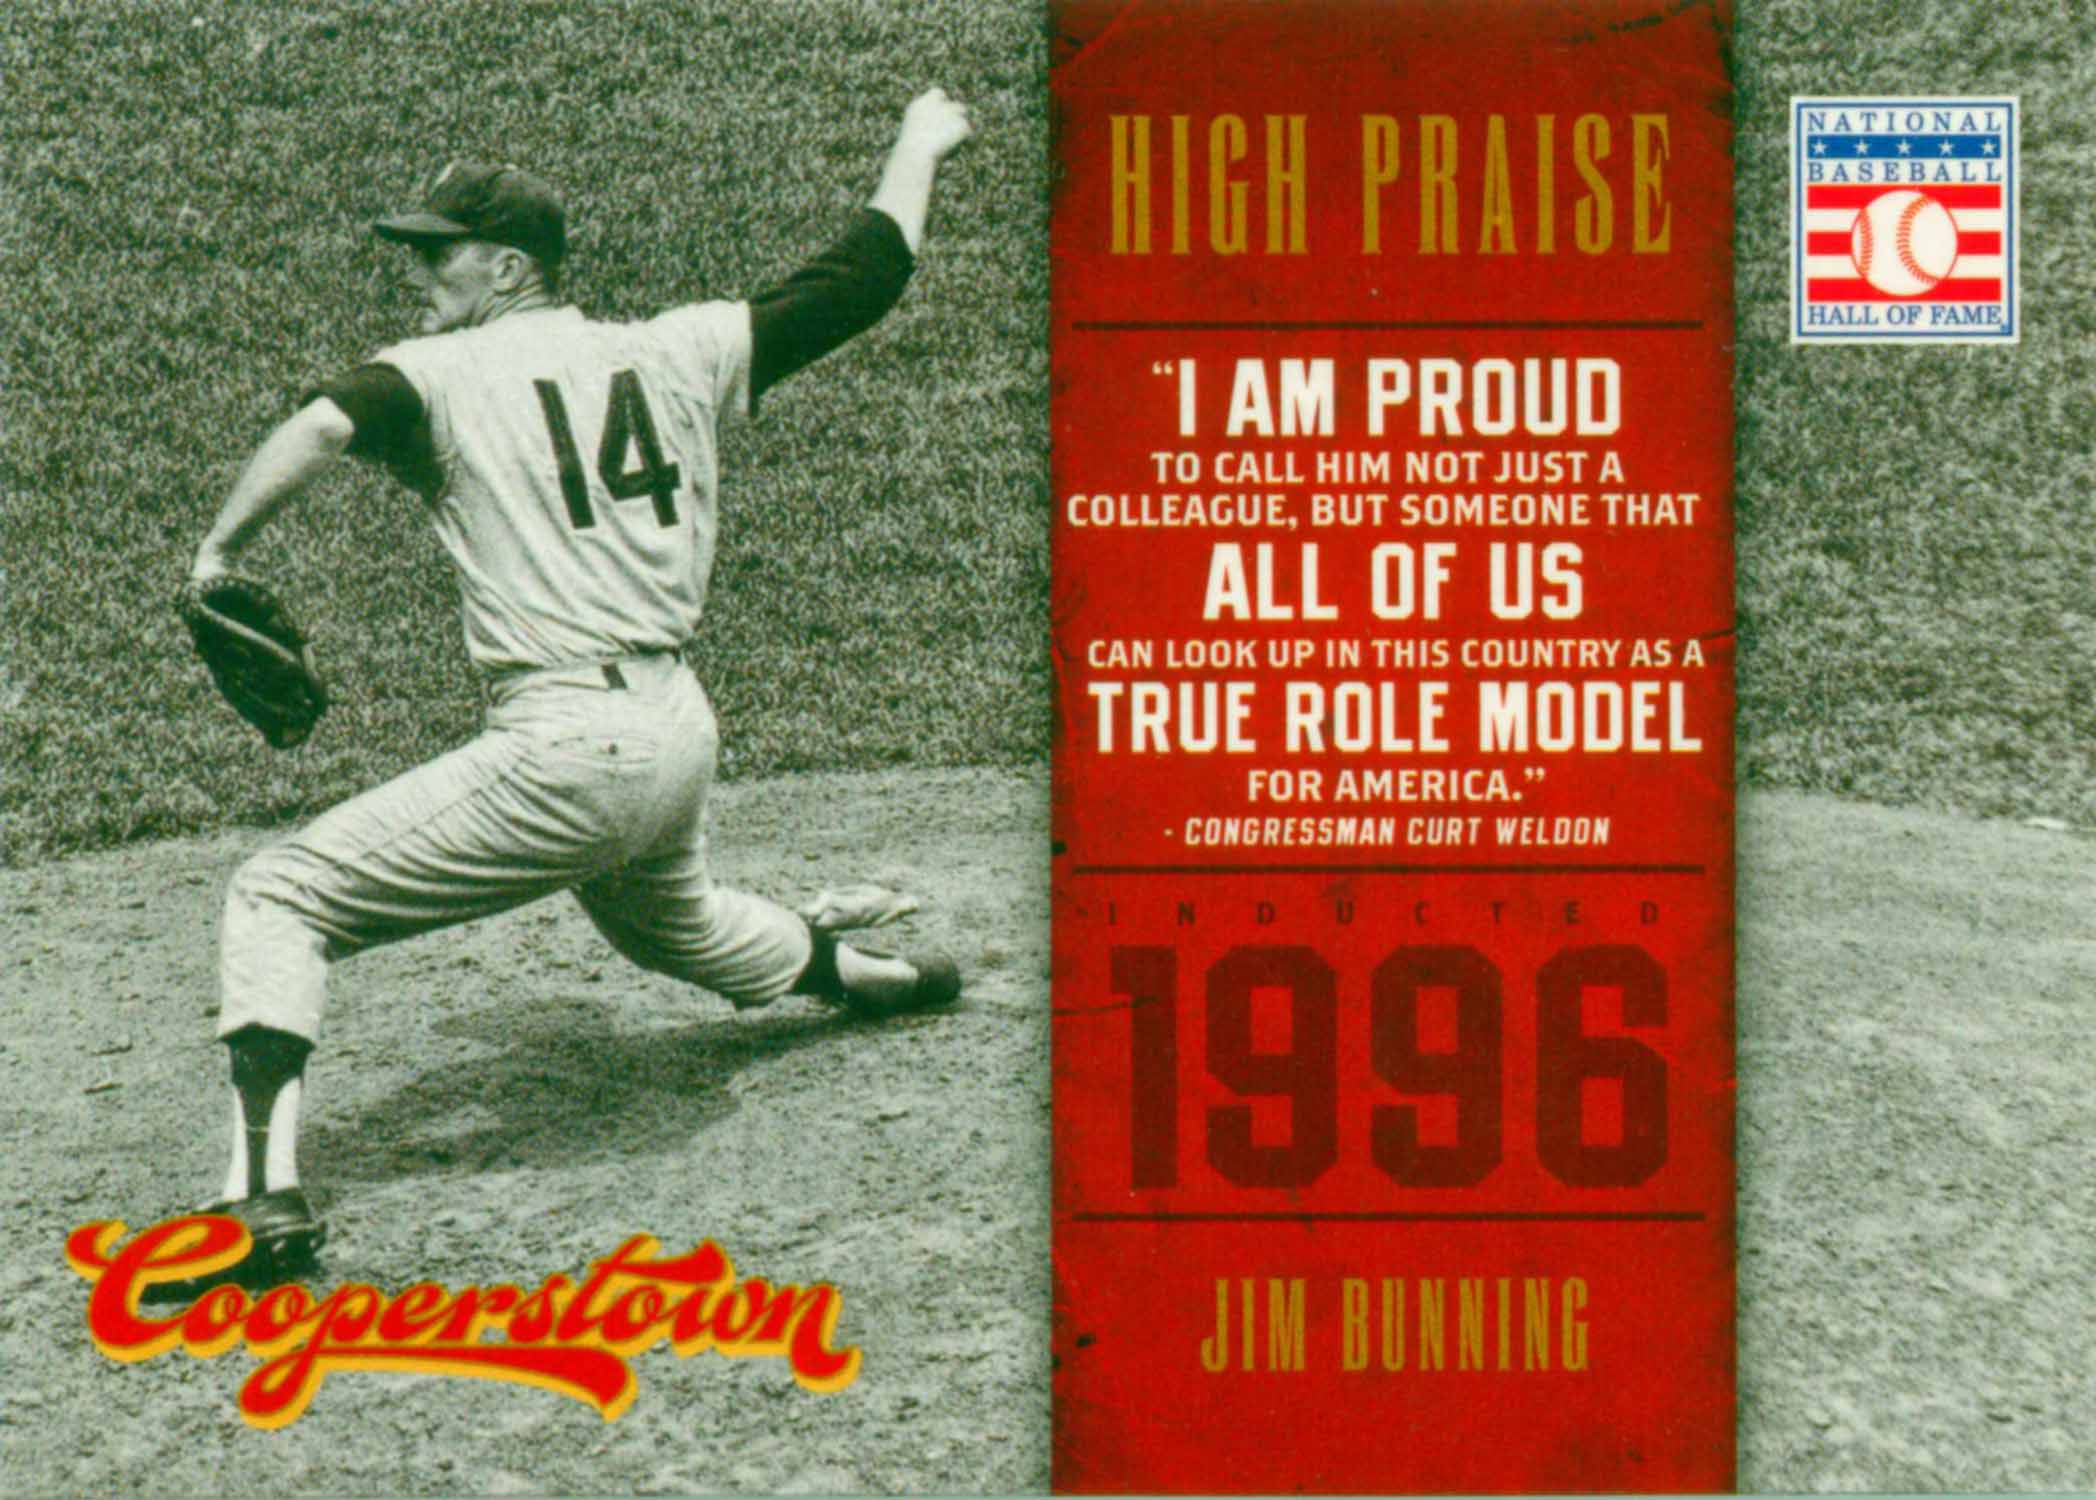 2012 Panini Cooperstown High Praise